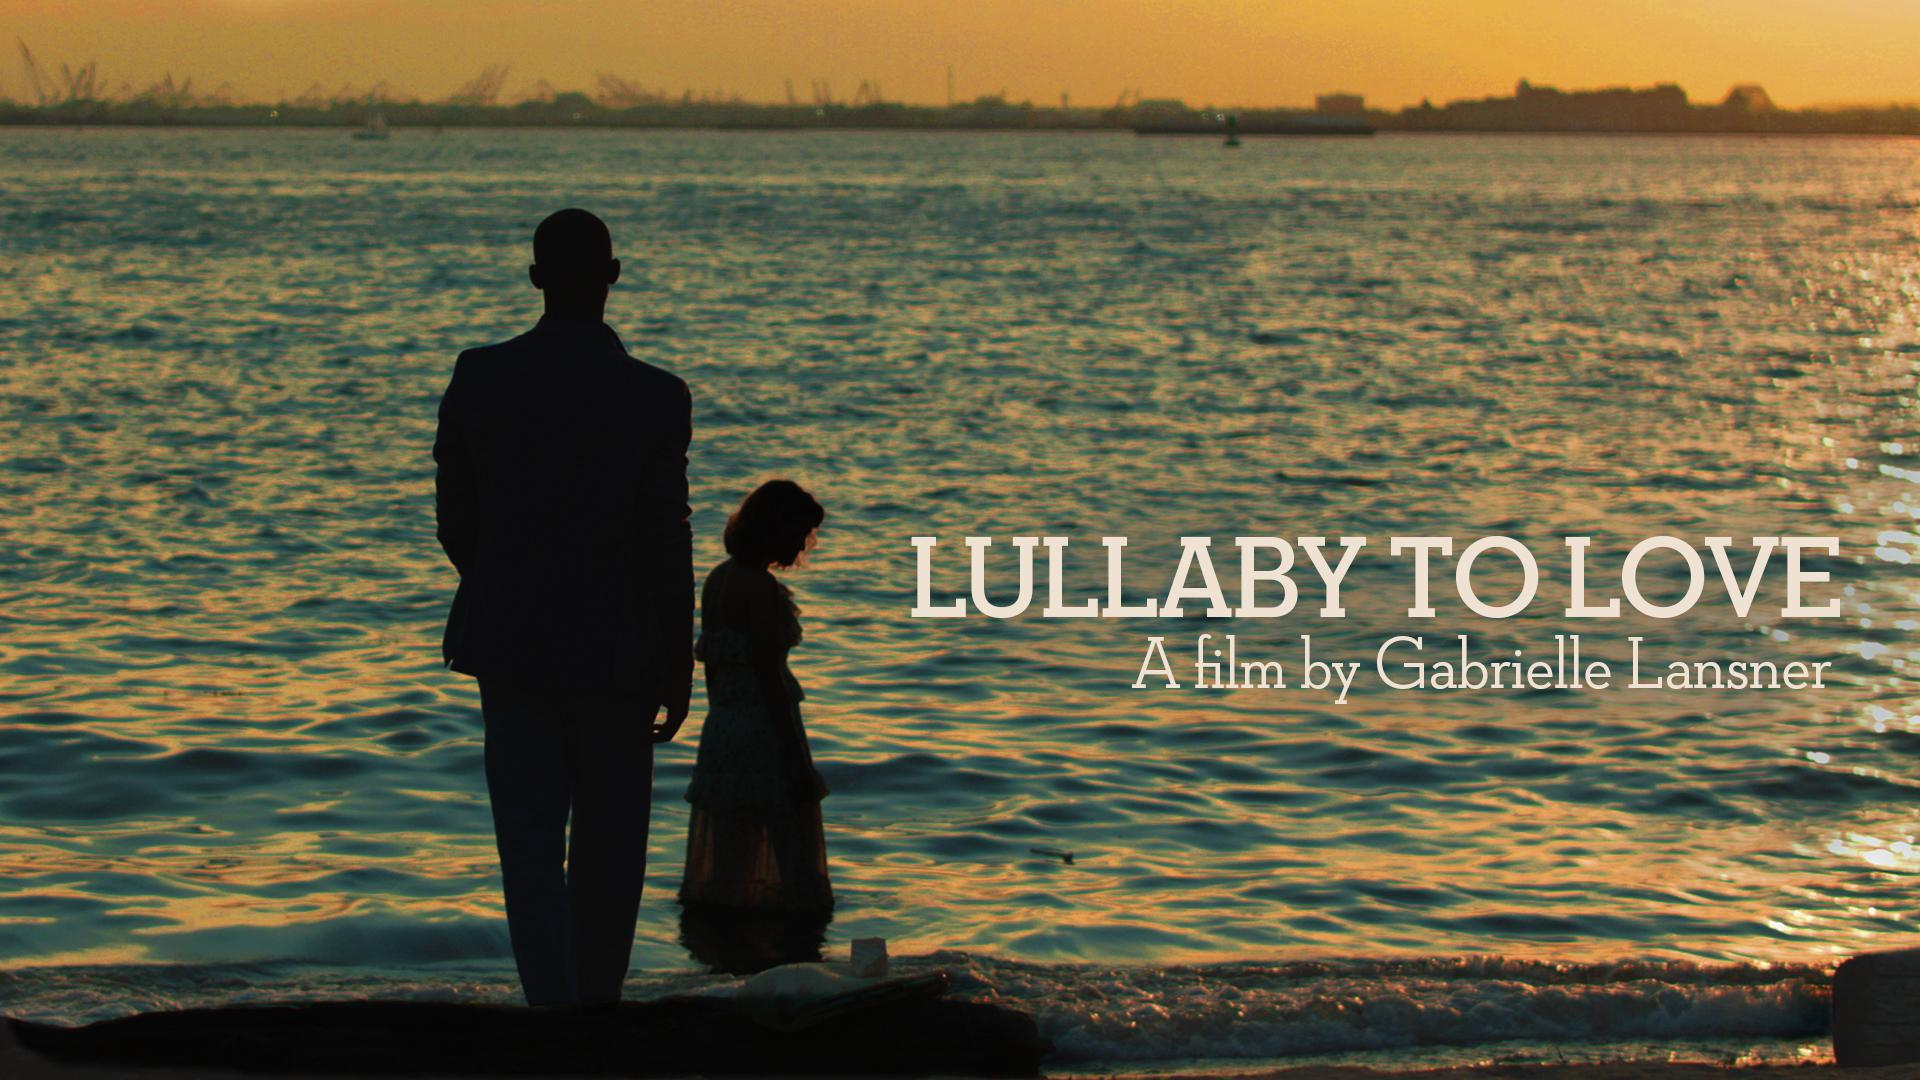 Lullaby to Love